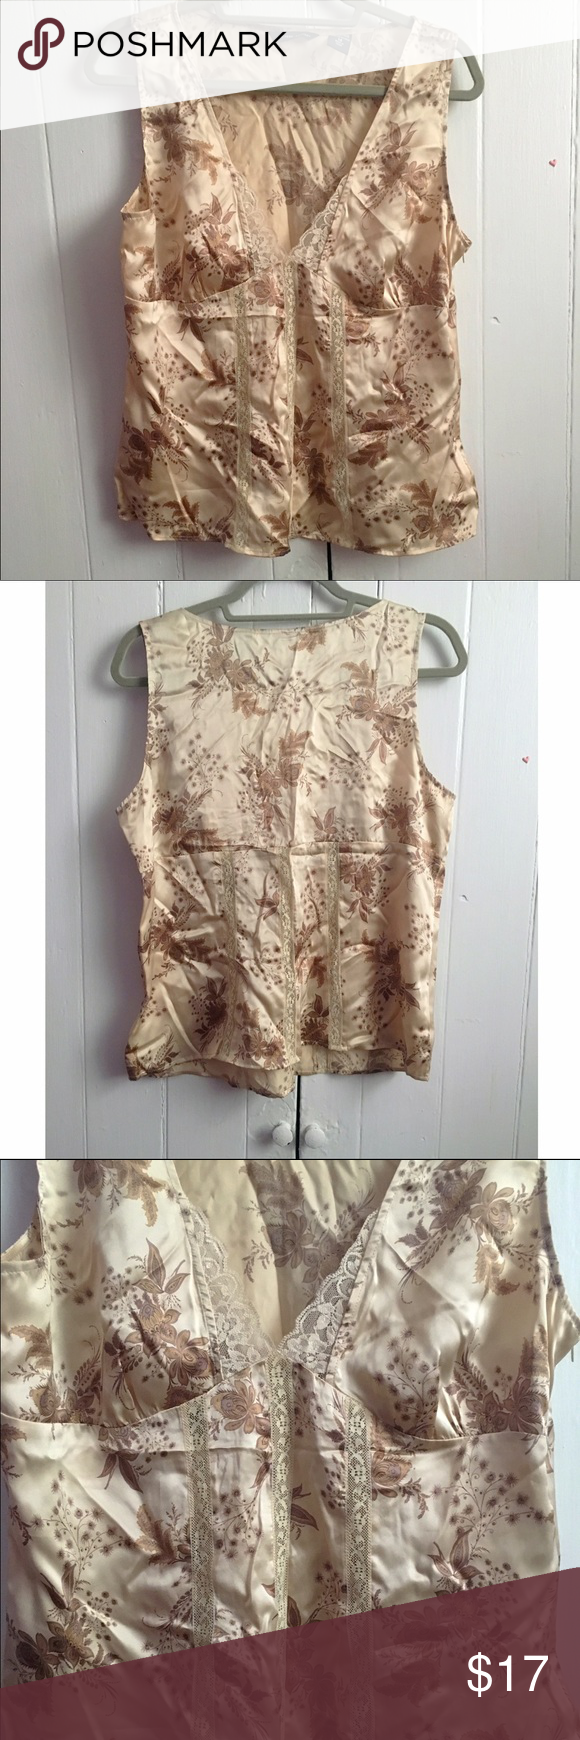 "New York & Co. floral silk camisole top 14 Gorgeous top in excellent pre-loved condition. Looks fabulous under a brown velour/velvet blazer. 100% silk. Side zipper for easy entry. Approx 40"" bust, 23"" length. ✅offers❌trades/PP💰make an offer on bundles New York & Company Tops"